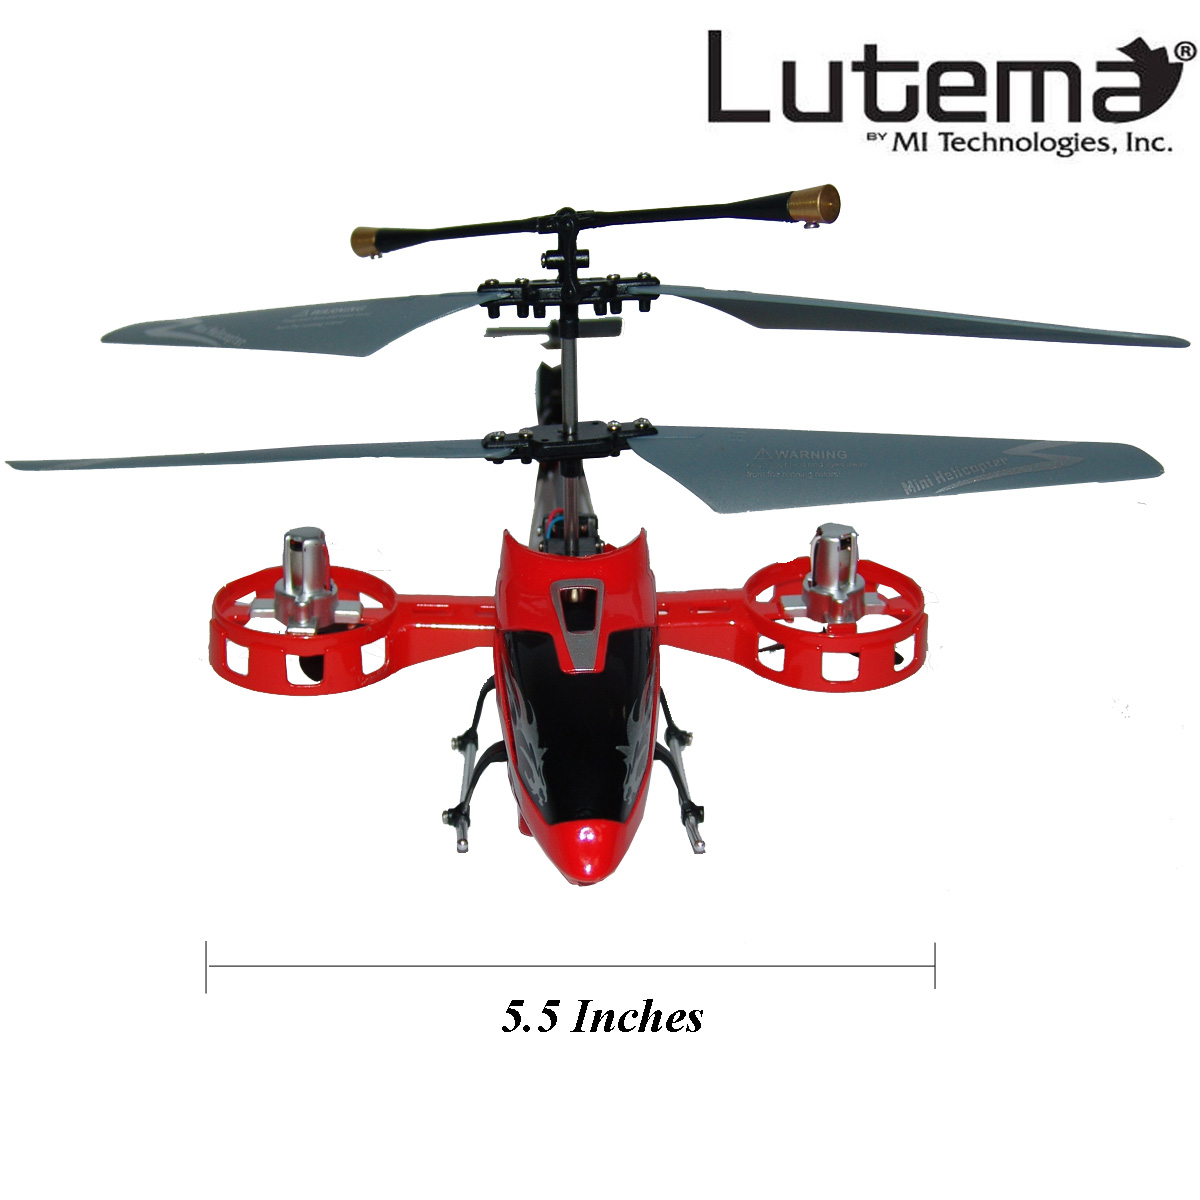 lutema helicopter with 301539578830 on Precio Html in addition Avatar Rc Helicopter 4ch likewise Best Rc Helicopter Reviews moreover B00LMMQ6R6 moreover MLM 553707482 Lutema Mid Sized 35ch Remote Control Helicopter Blue  JM.